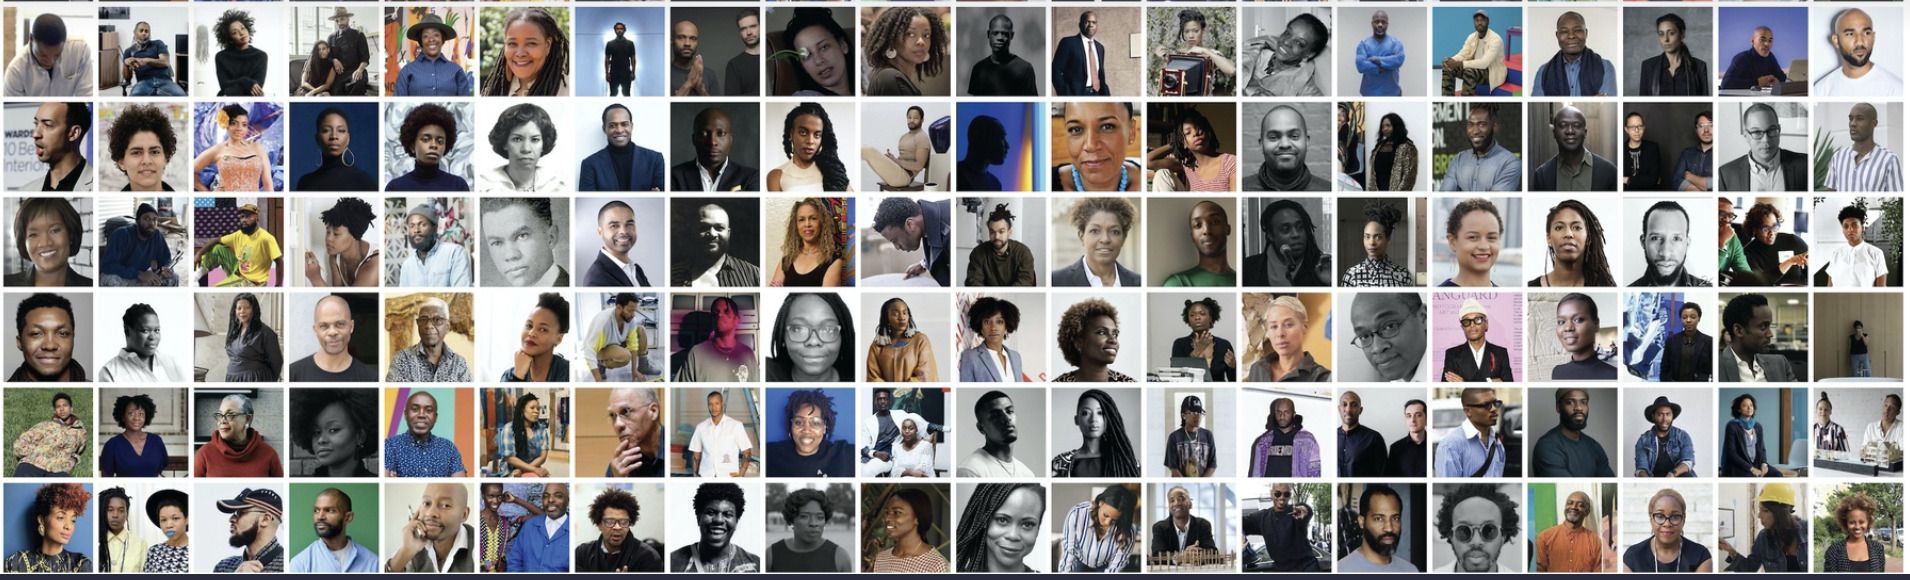 A tiled image of portraits of Black artists, designers, and creatives